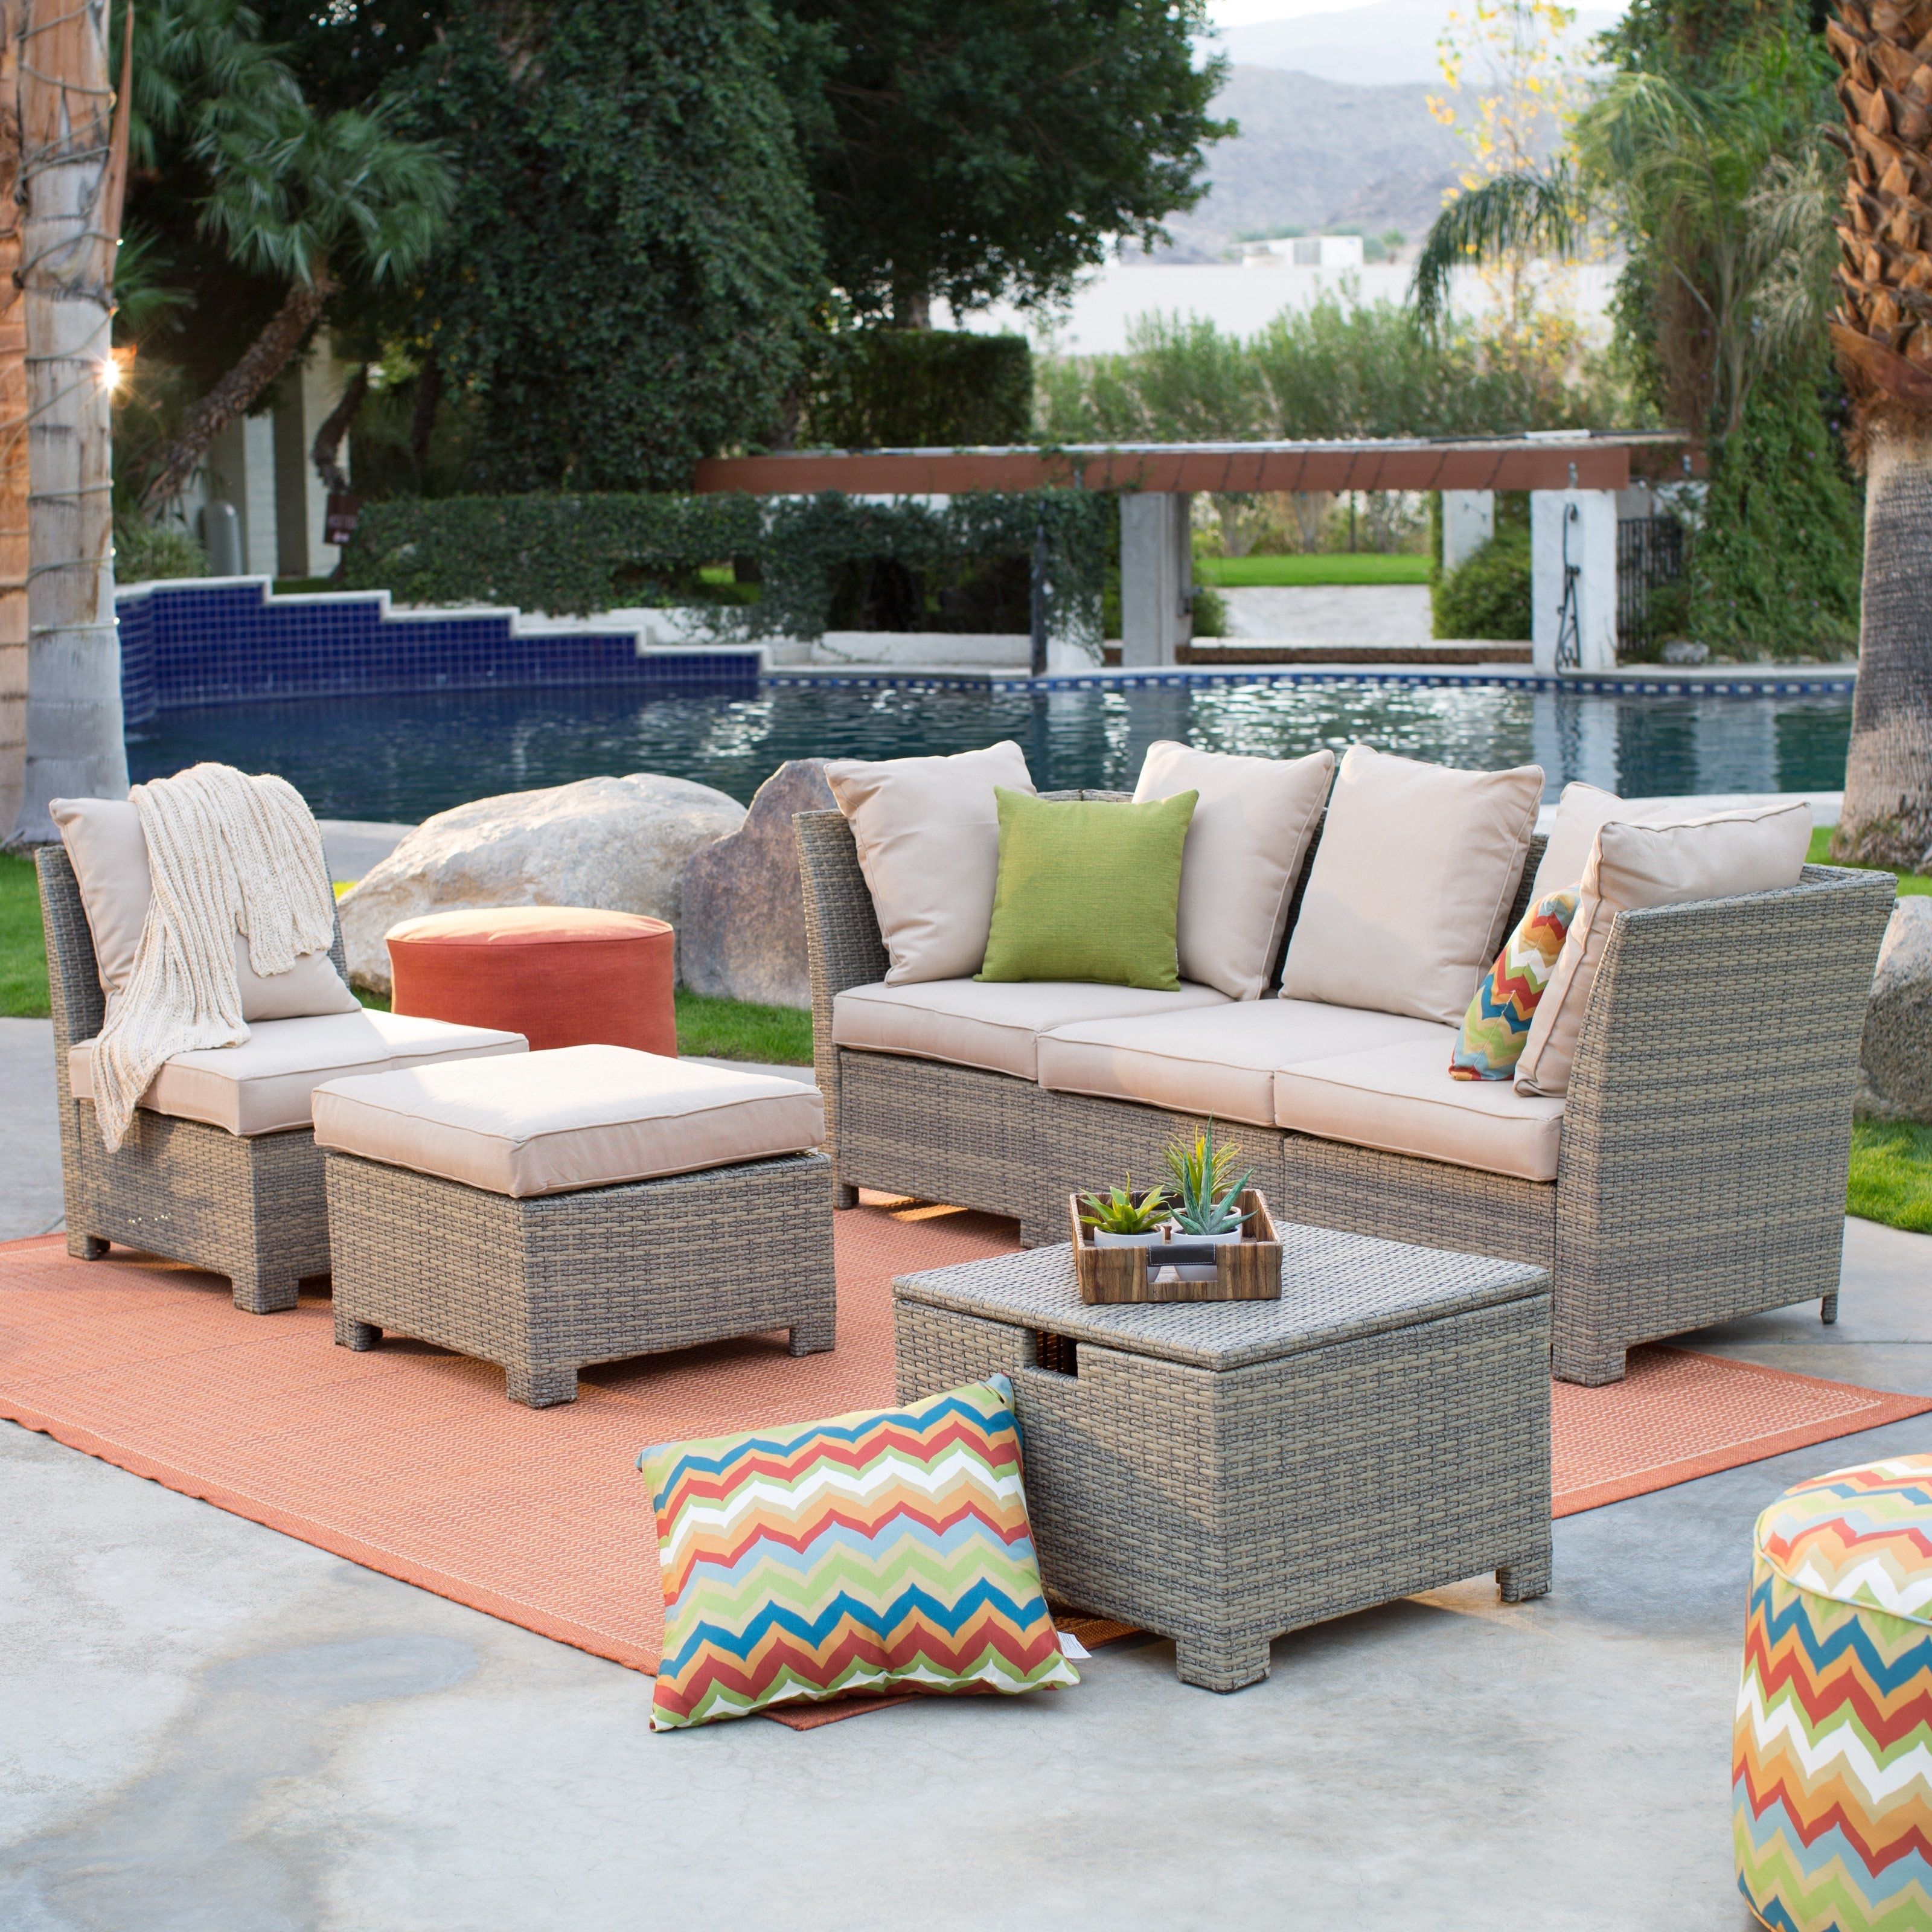 Latest Resin Conversation Patio Sets With Fabulous Resin Wicker Patio Chairs Resin Wicker Patio Sets Amp (View 9 of 15)